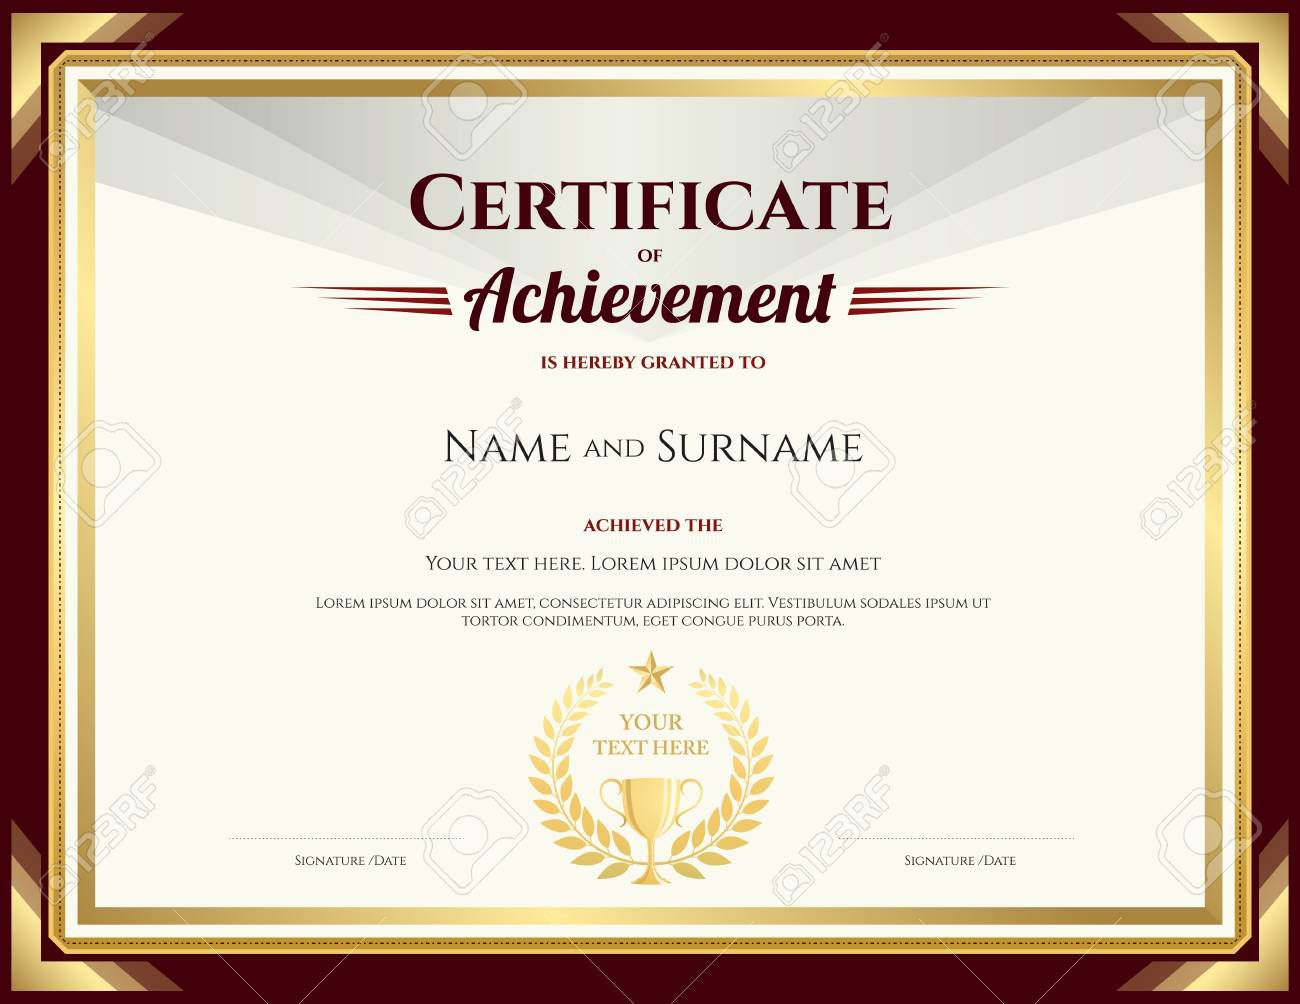 Certificate Of Achievement Template  Addictionary intended for Awesome Word Template Certificate Of Achievement